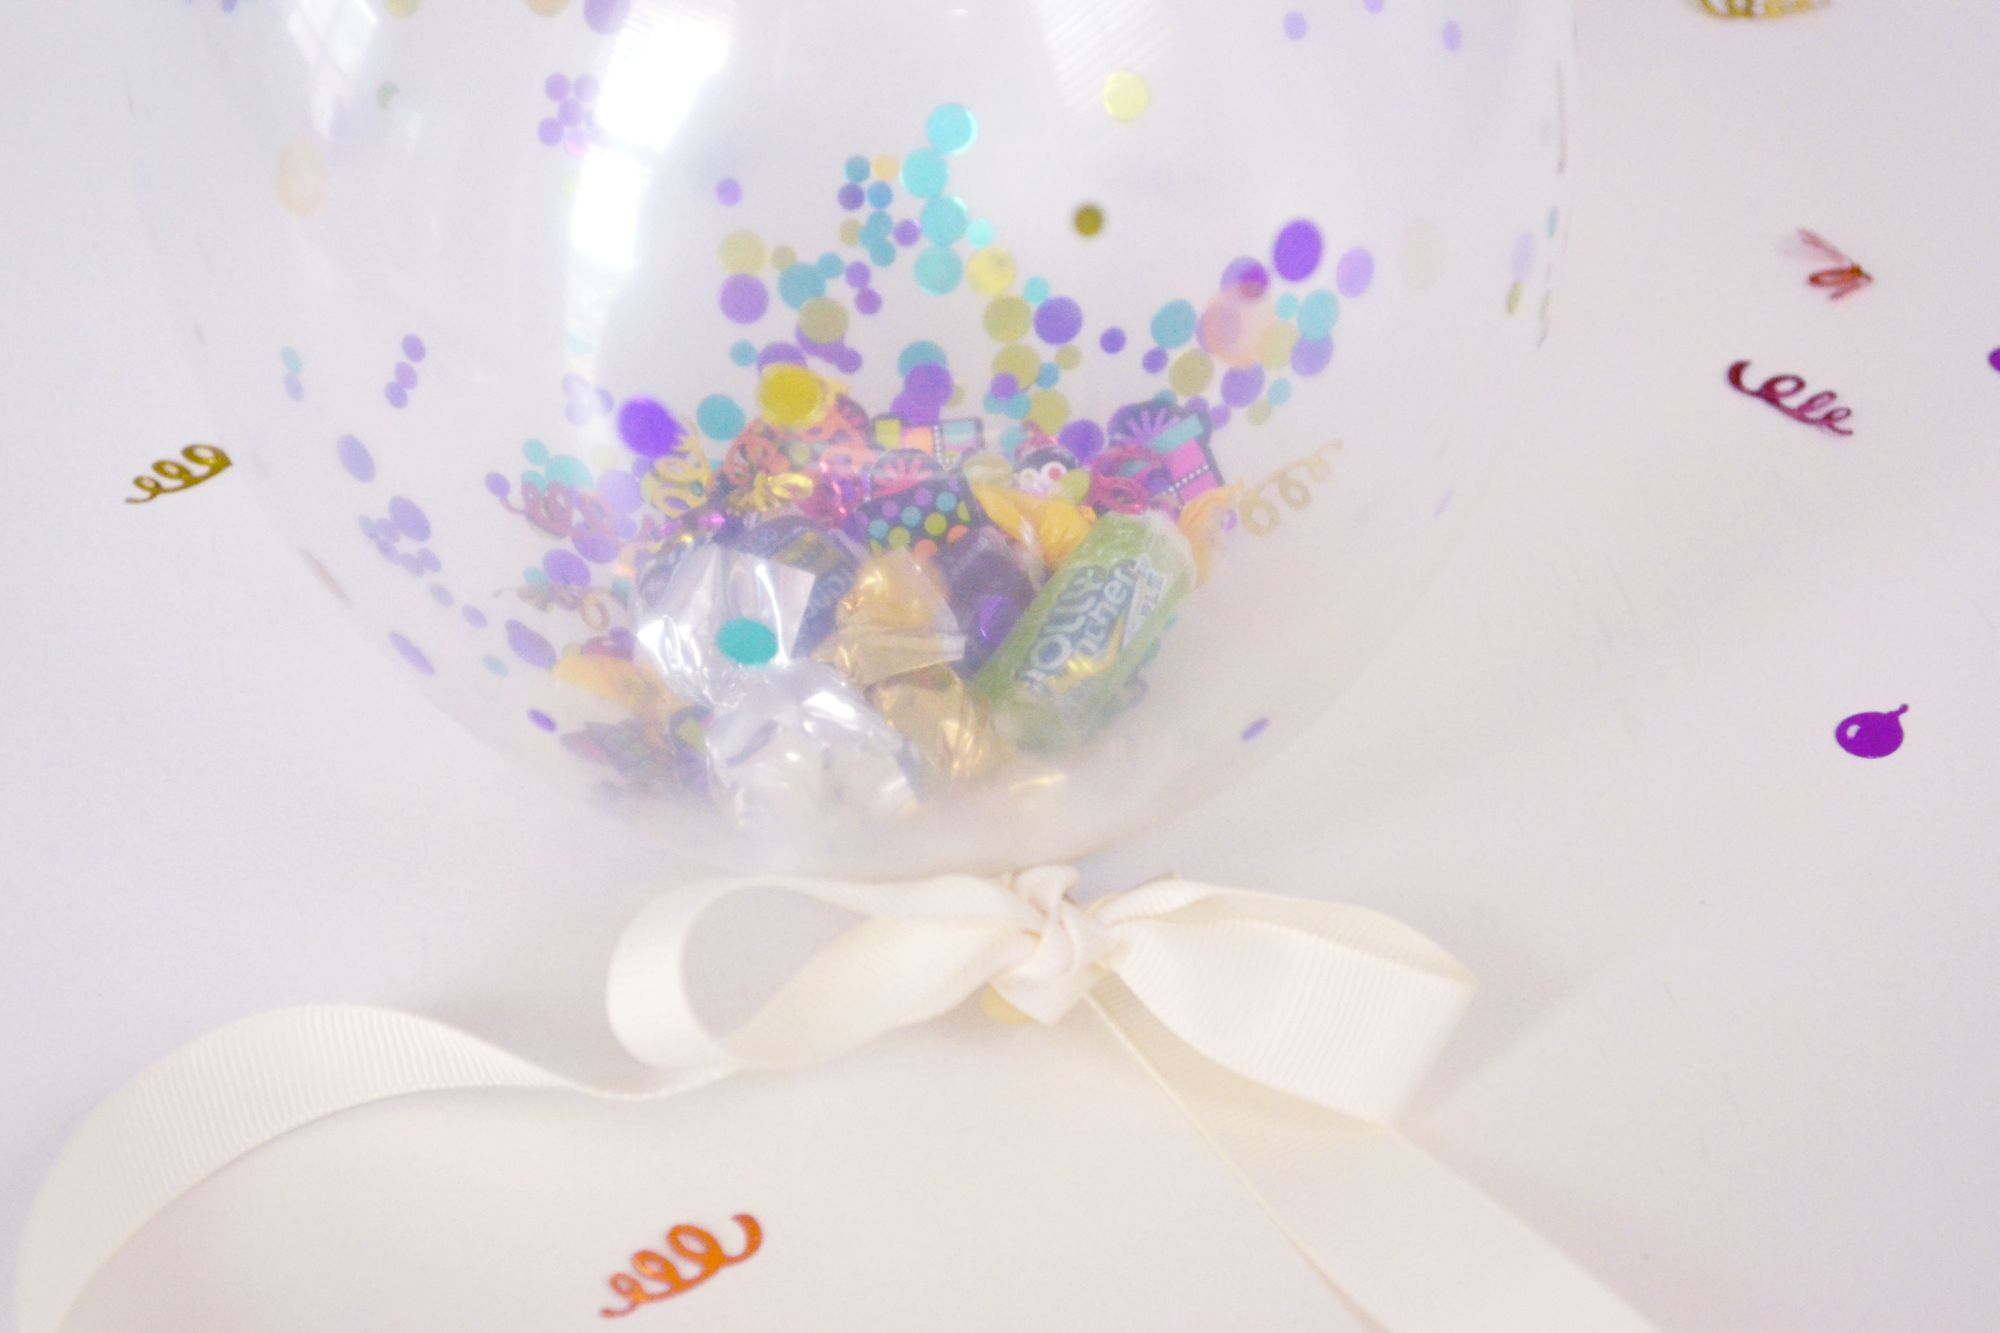 Confetti Balloon Invites Closer Look